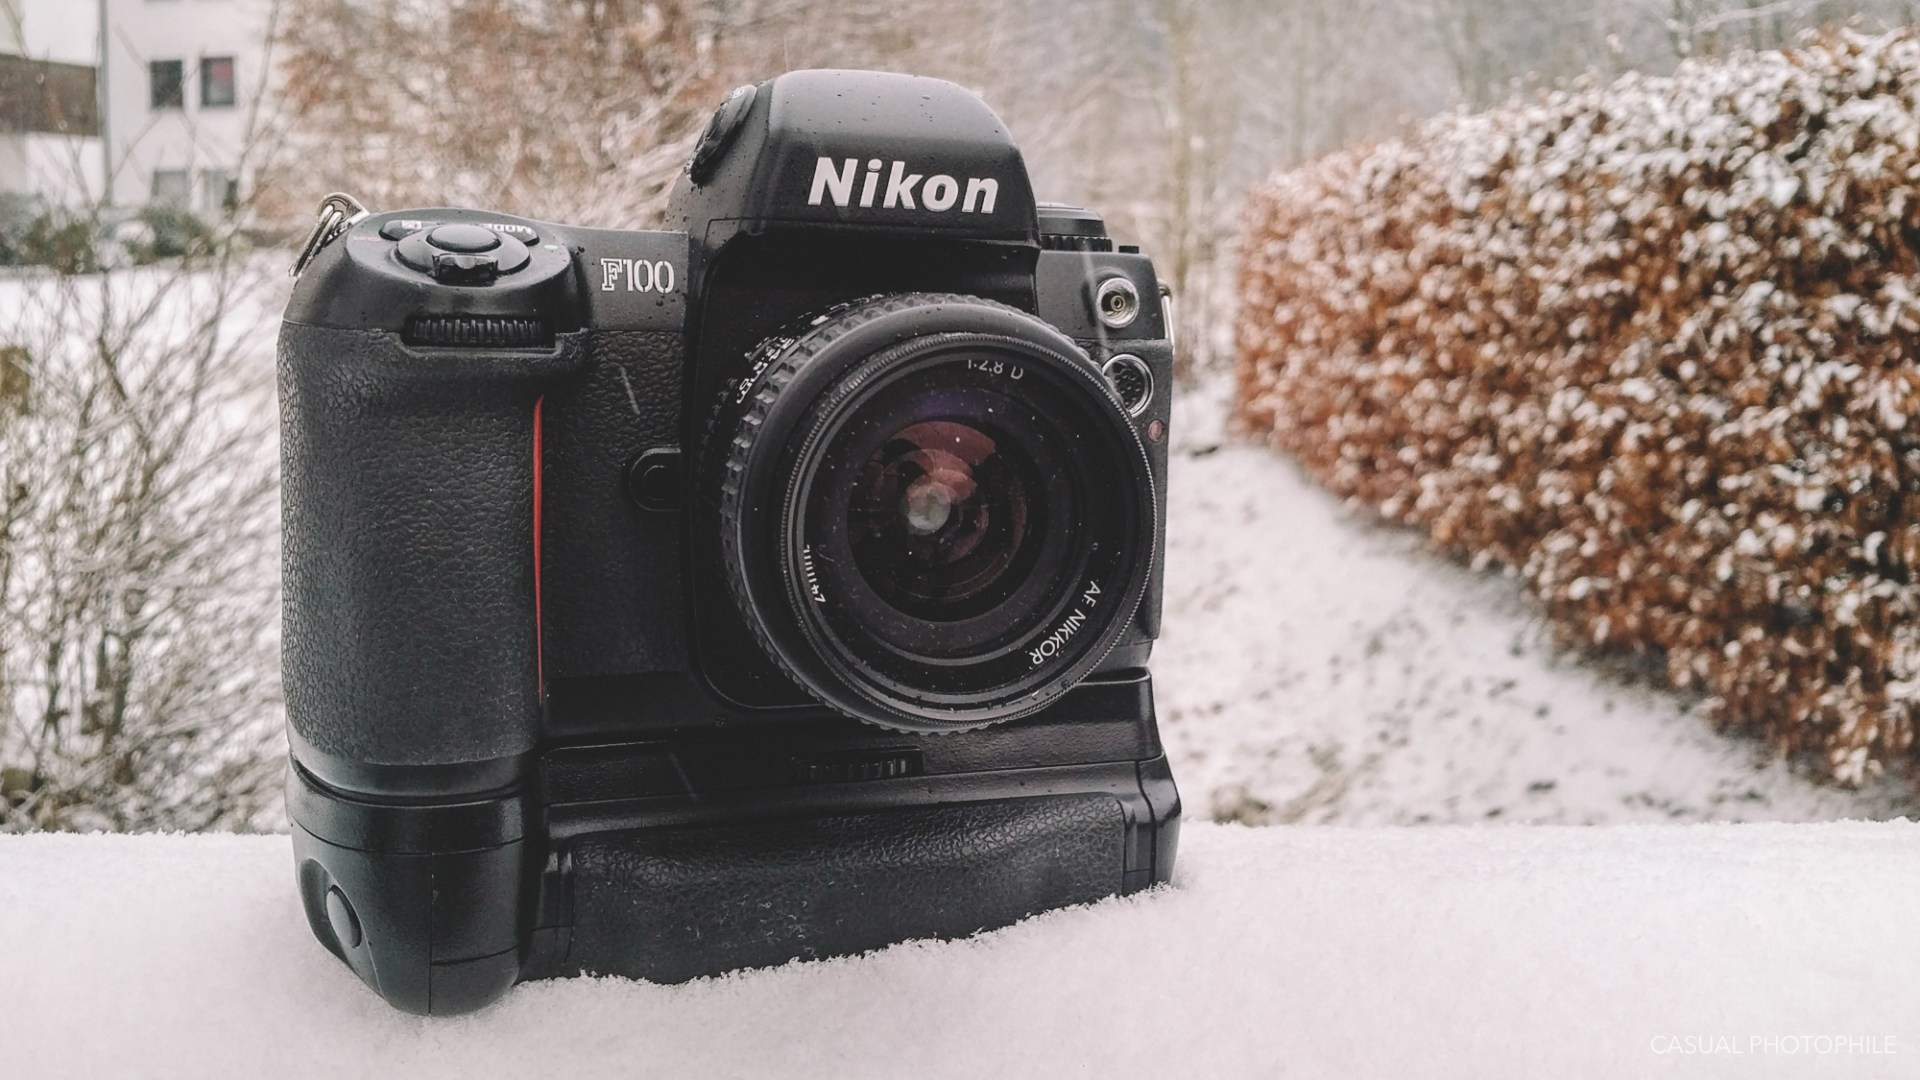 Nikon F100 Review - The Ultimate 35mm Film SLR Value